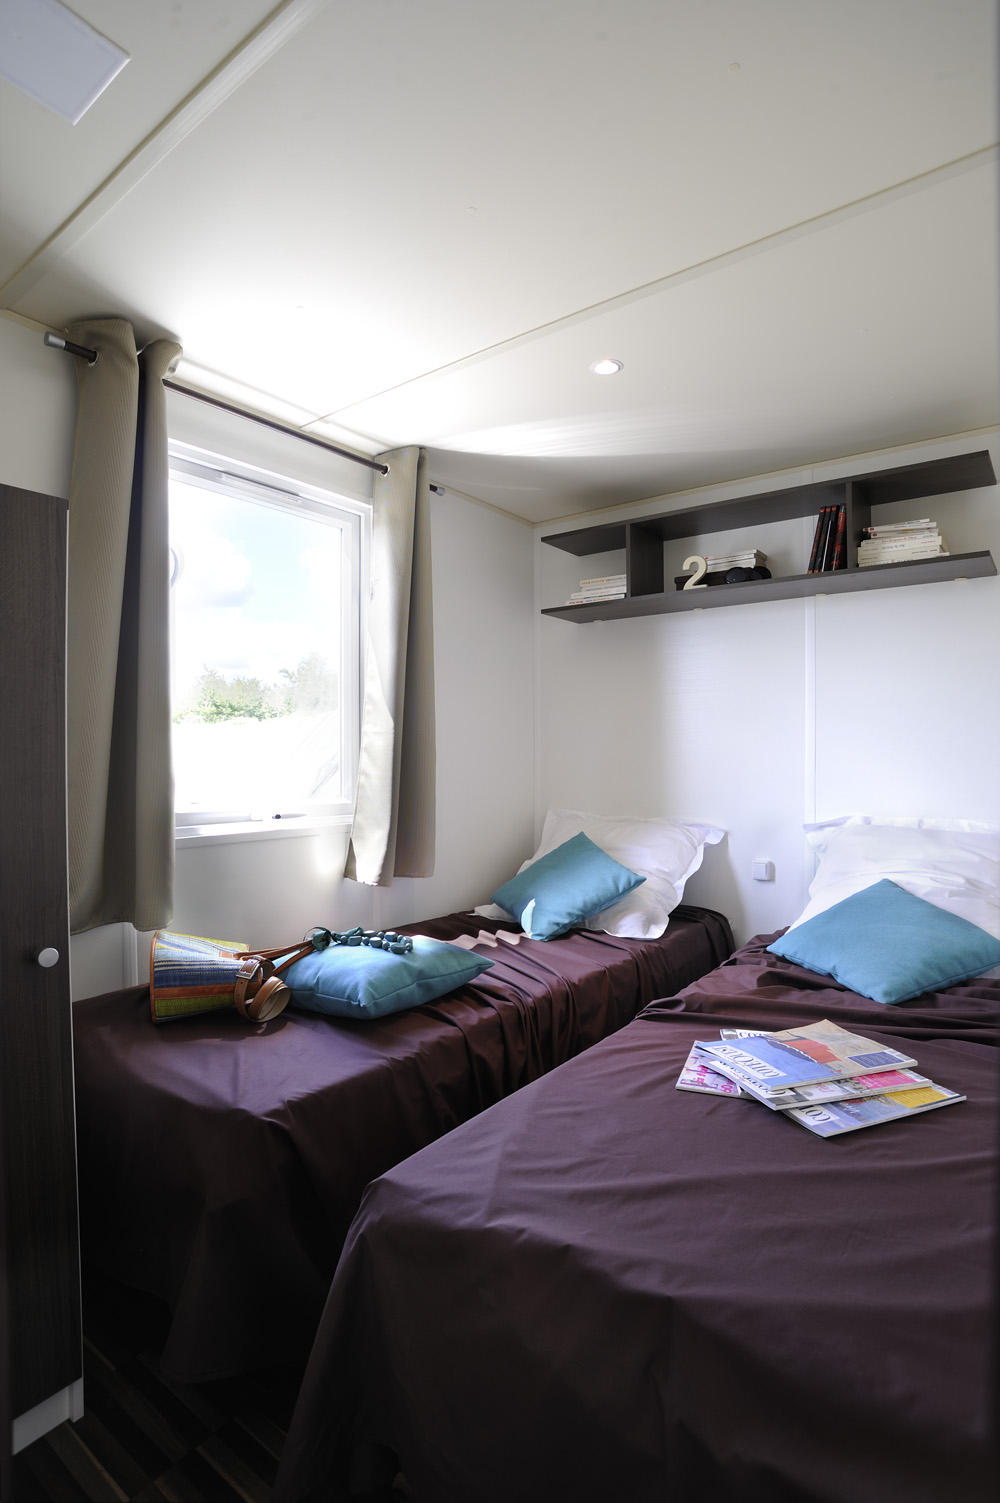 Location mobil-homes 3 chambres 6/7 pers. au Camping de La Prairie à Port en Bessin, camping 2 étoiles, location camping, mobil homes, gîtes toilés et studios, proche des plages du Débarquement, Arromanches, Bayeux, Calvados en Normandie